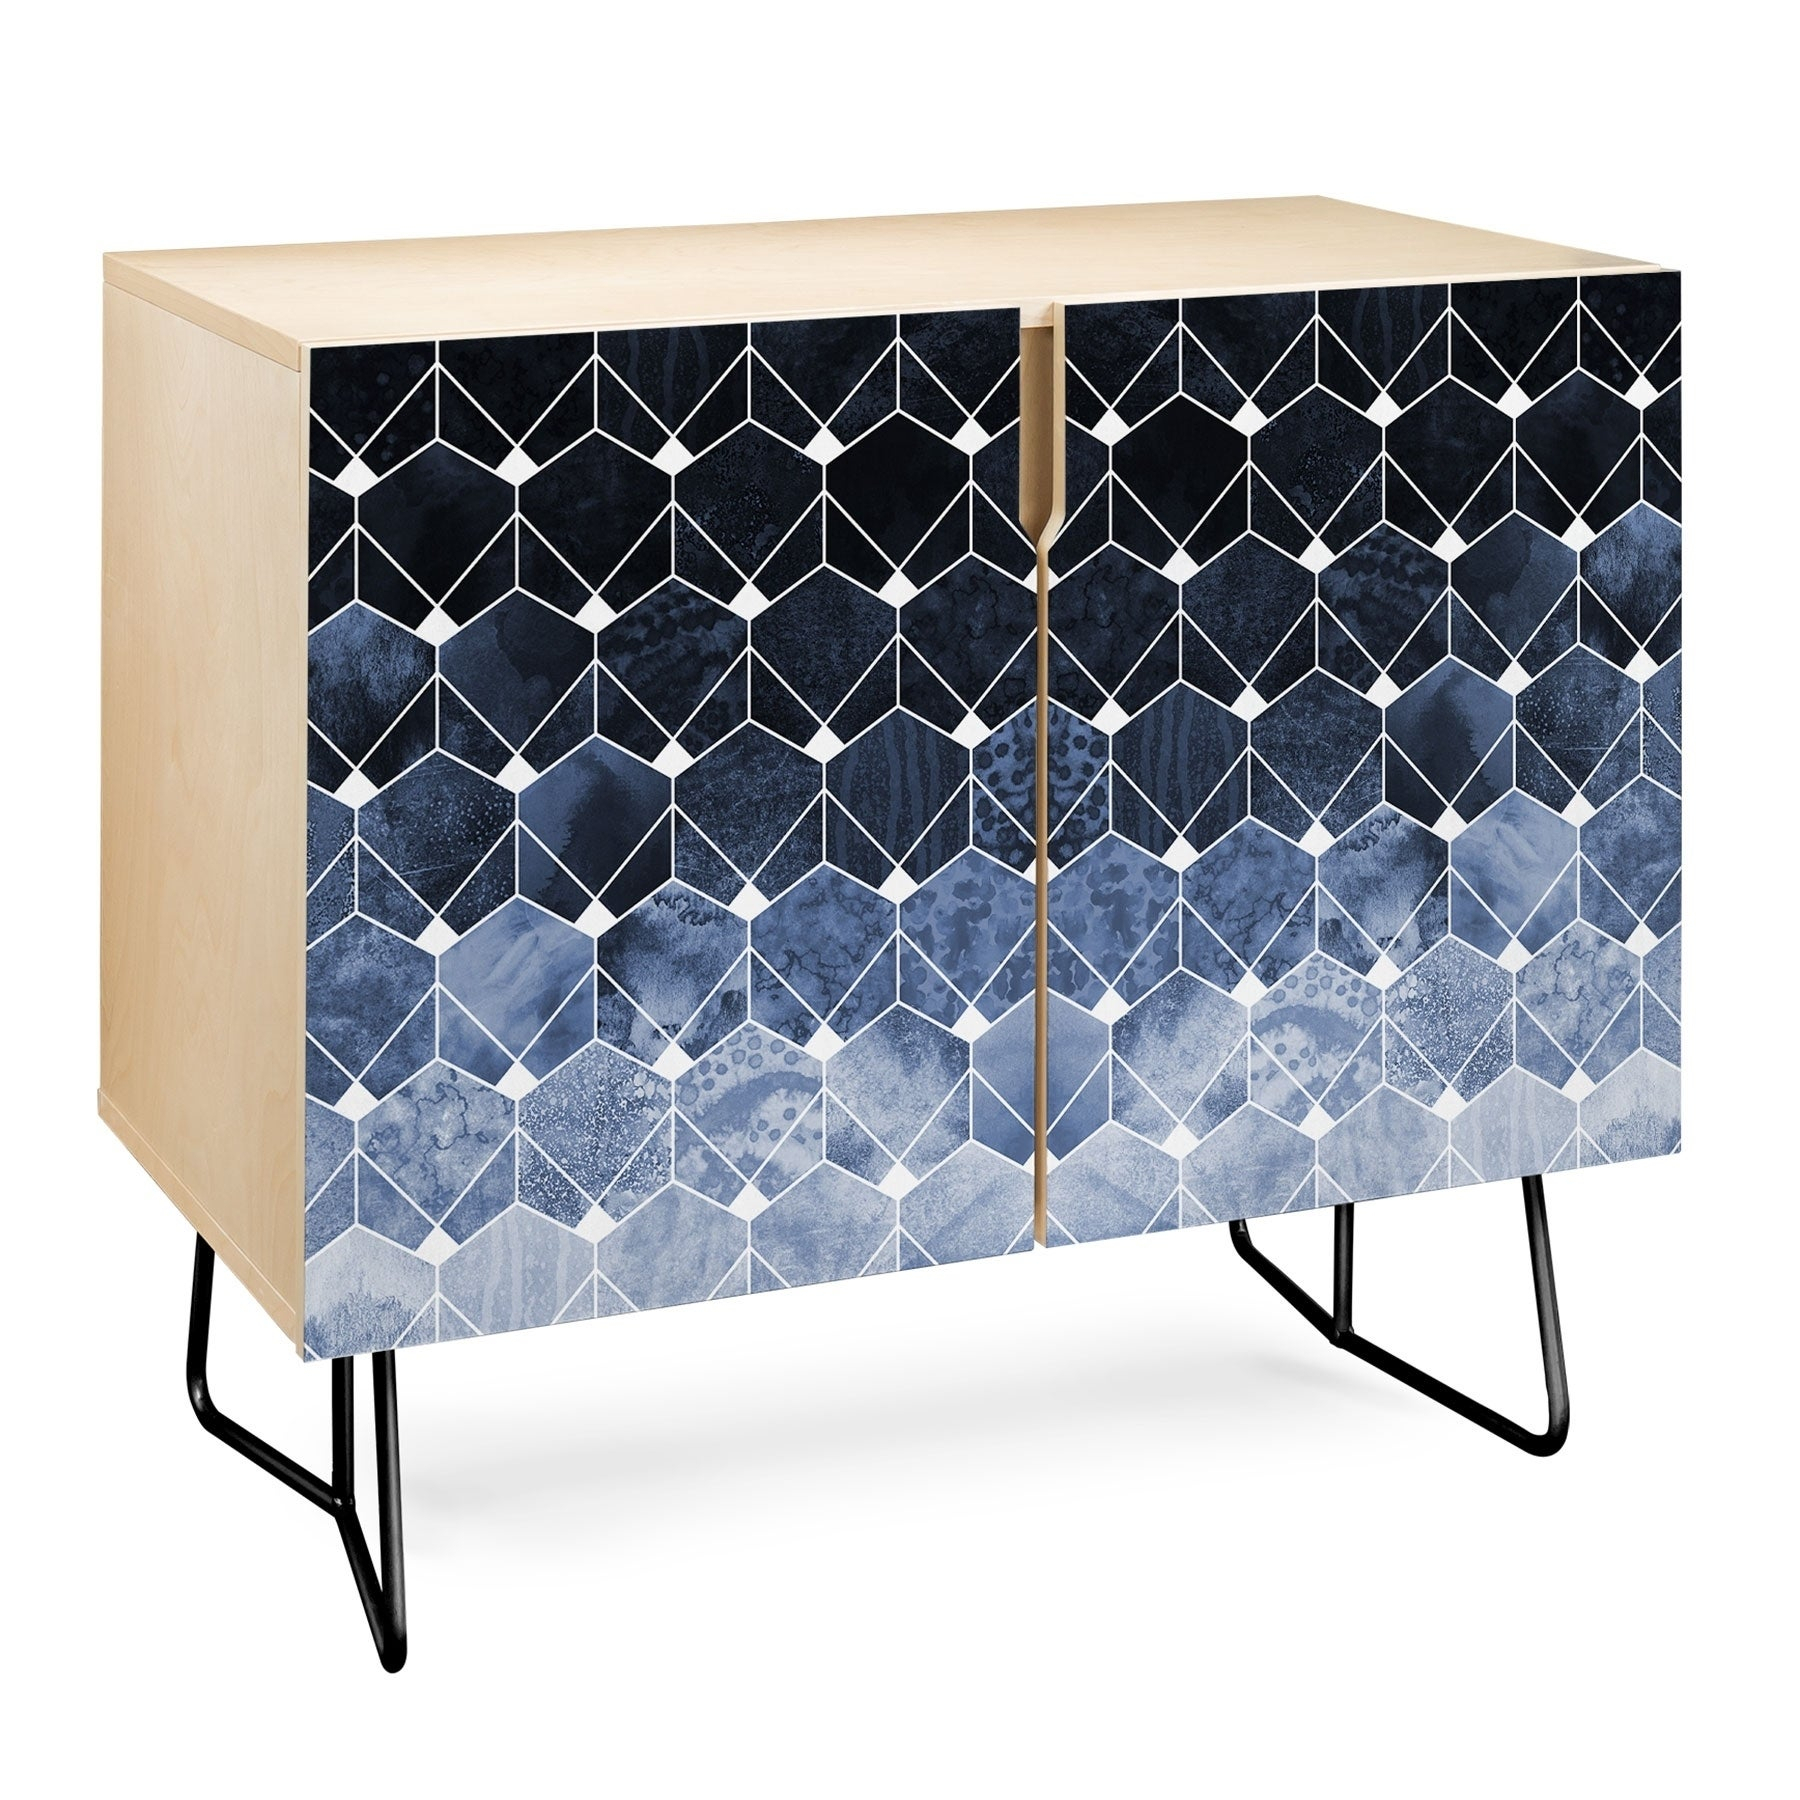 Deny Designs Blue Hexagons And Diamonds Credenza (Birch Or Walnut, 2 Leg  Options) intended for Line Geo Credenzas (Image 5 of 30)